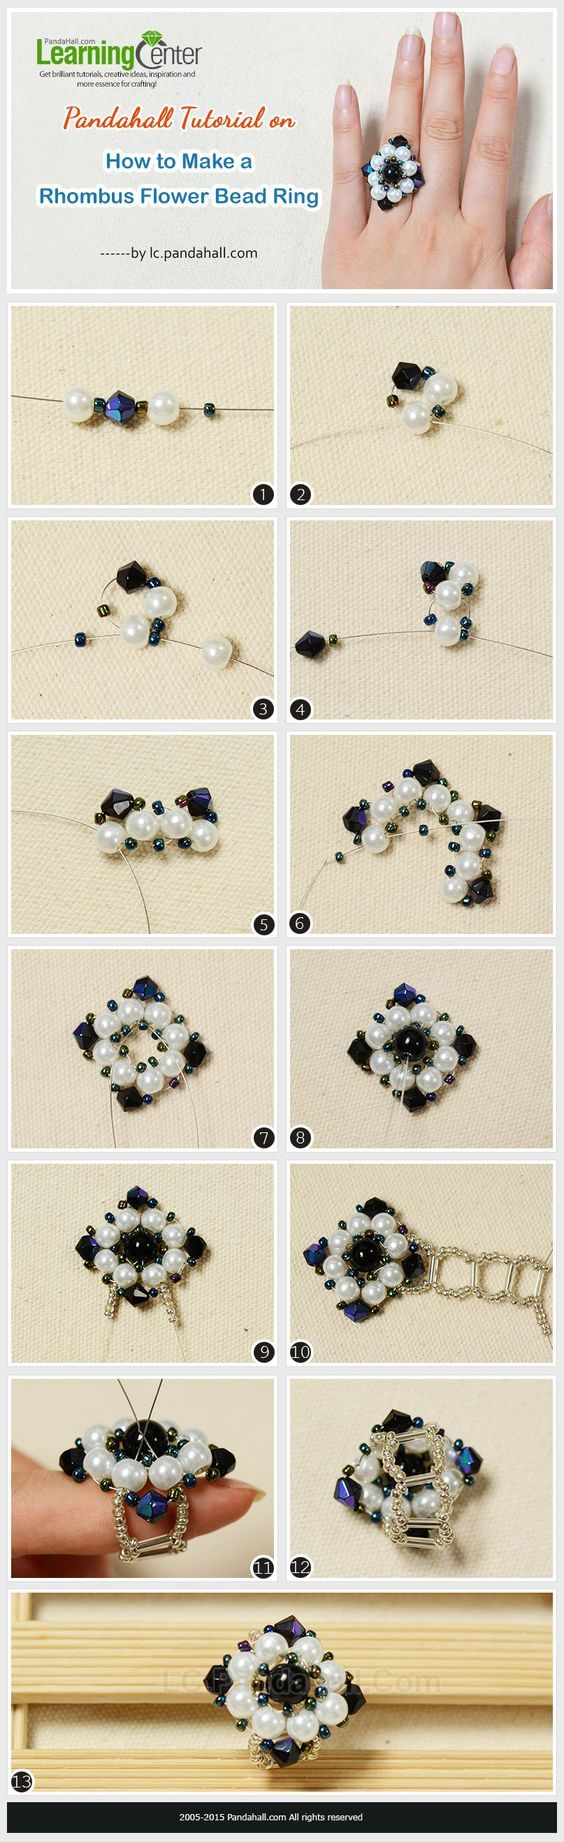 Pandahall-Tutorial-on-How-to-Make-a-Rhombus-Flower-Bead-Ring: